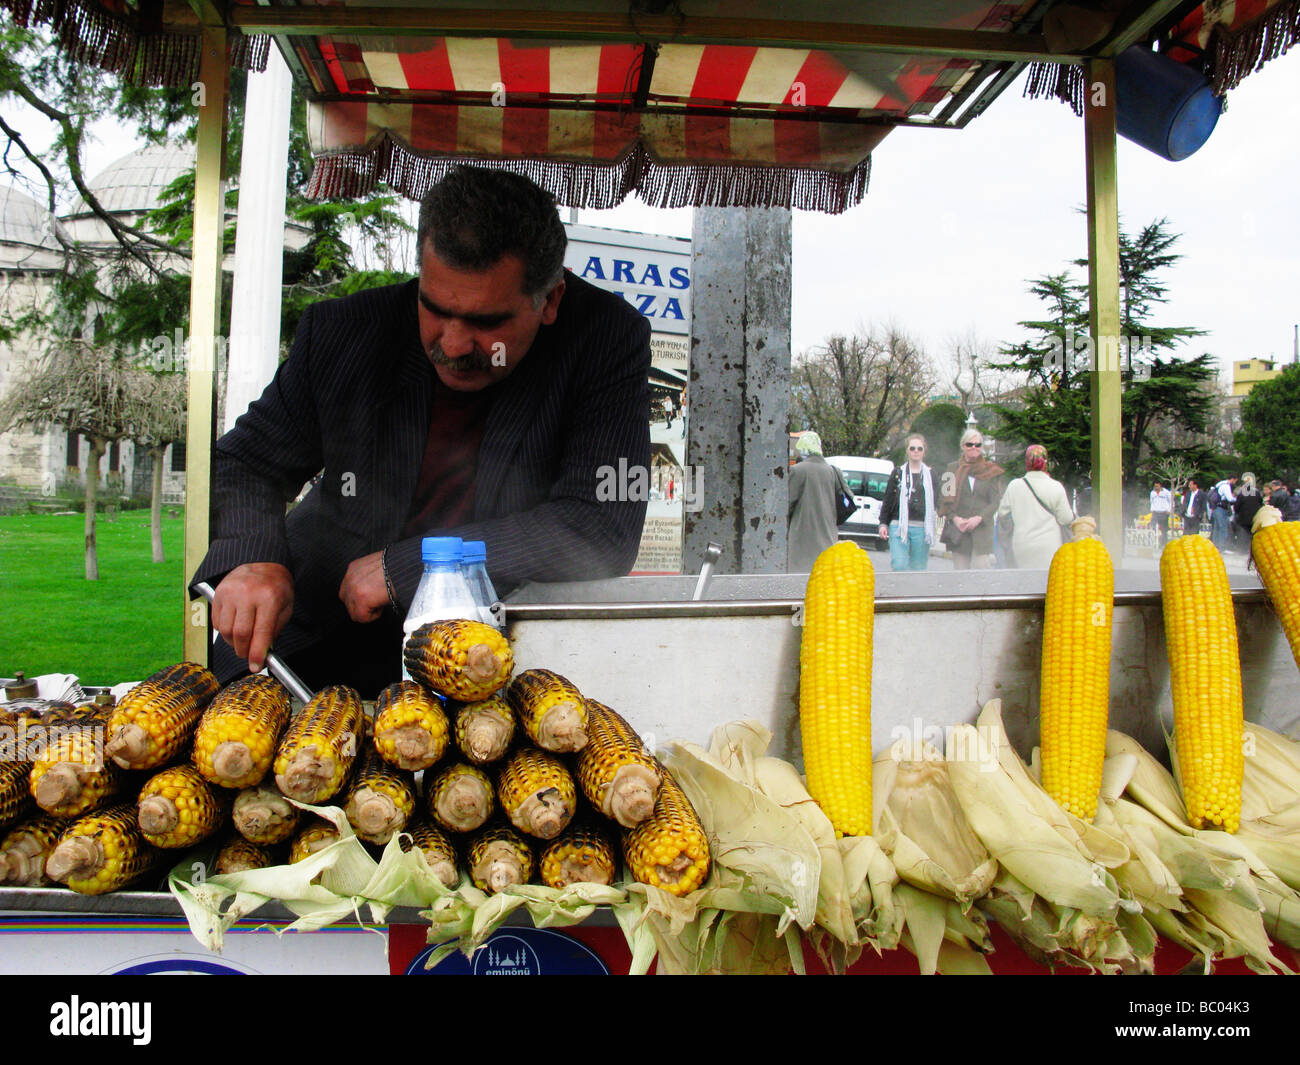 Street vendor selling grilled corn on the cob. Sultanahmet, Istanbul, Turkey. - Stock Image